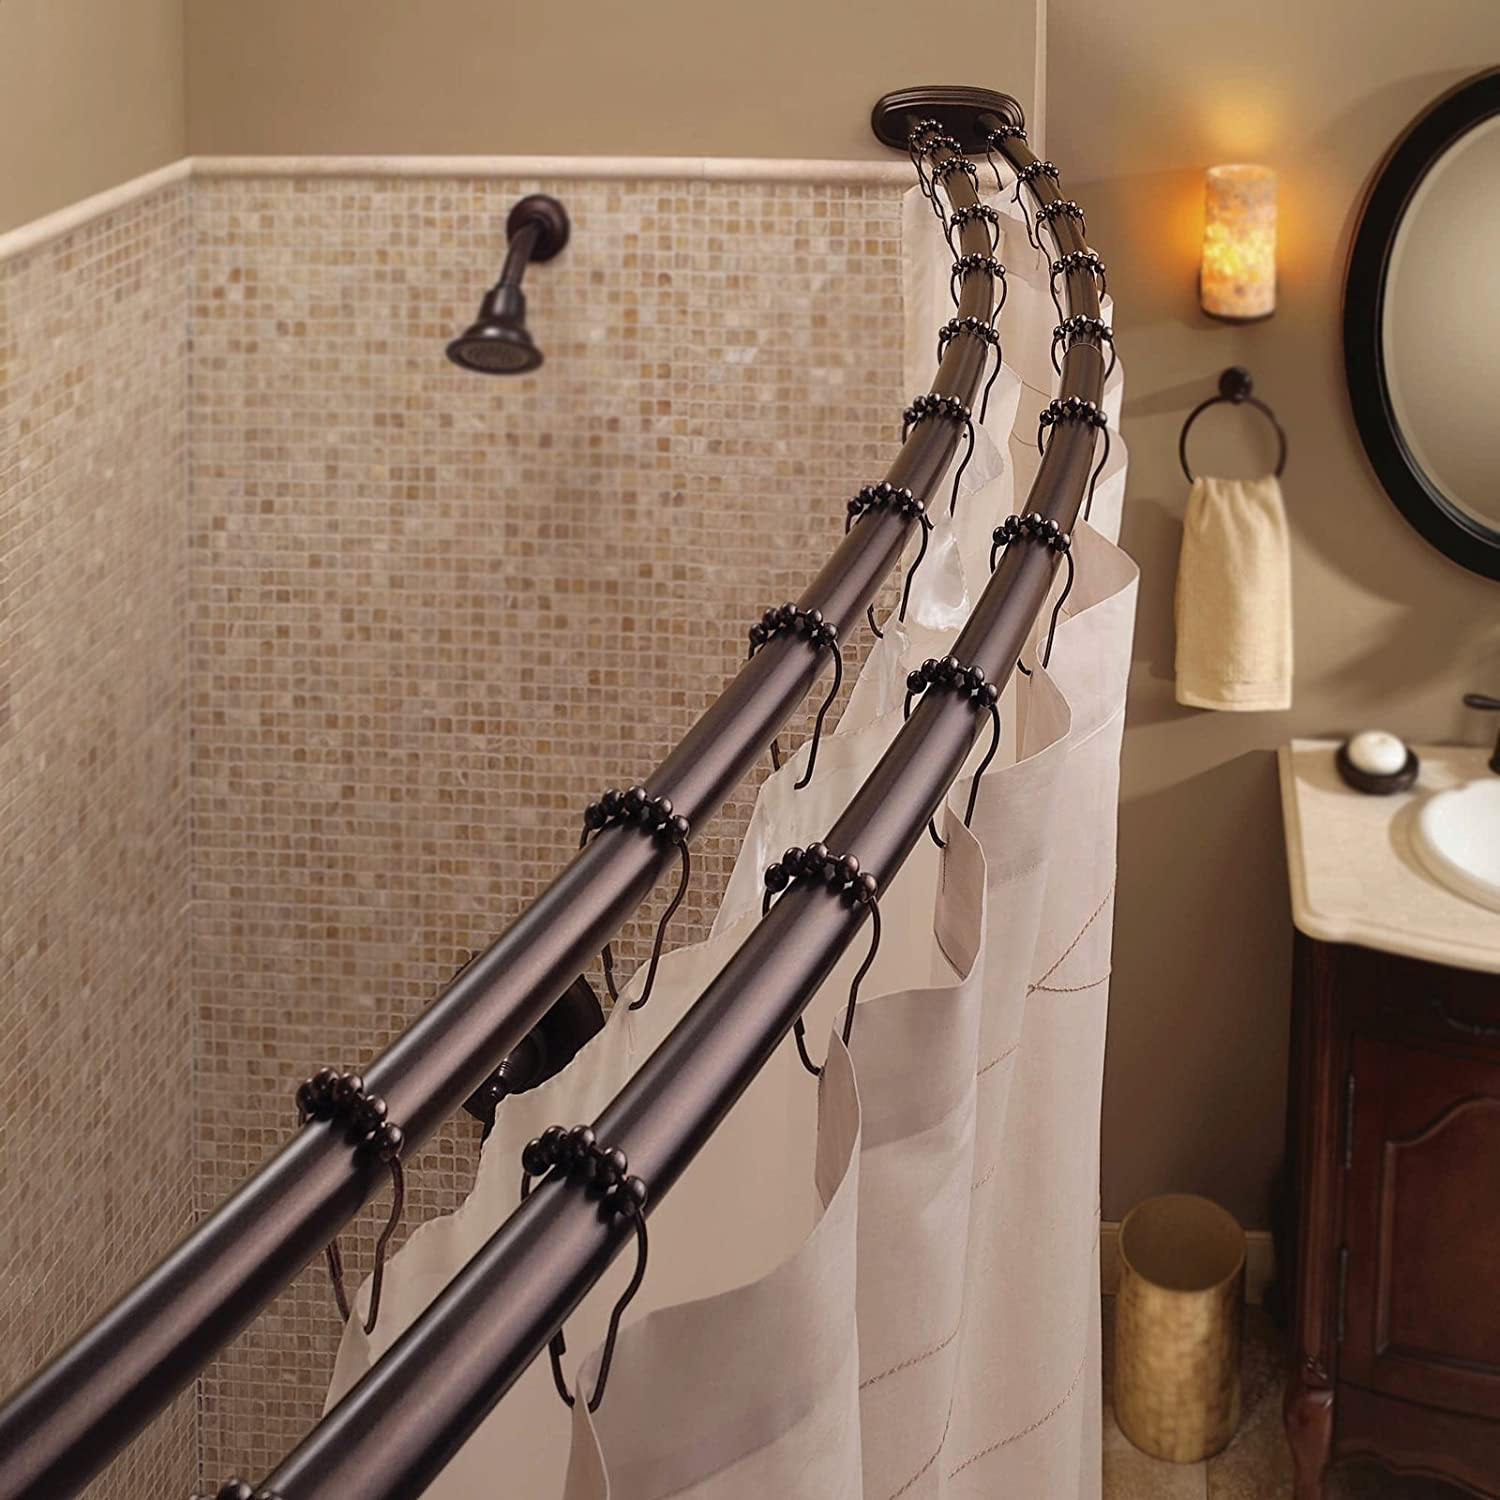 Curved Shower Curtain Adjustable Rod Bath Tub Accessory Oil Rubbed Bronze Home